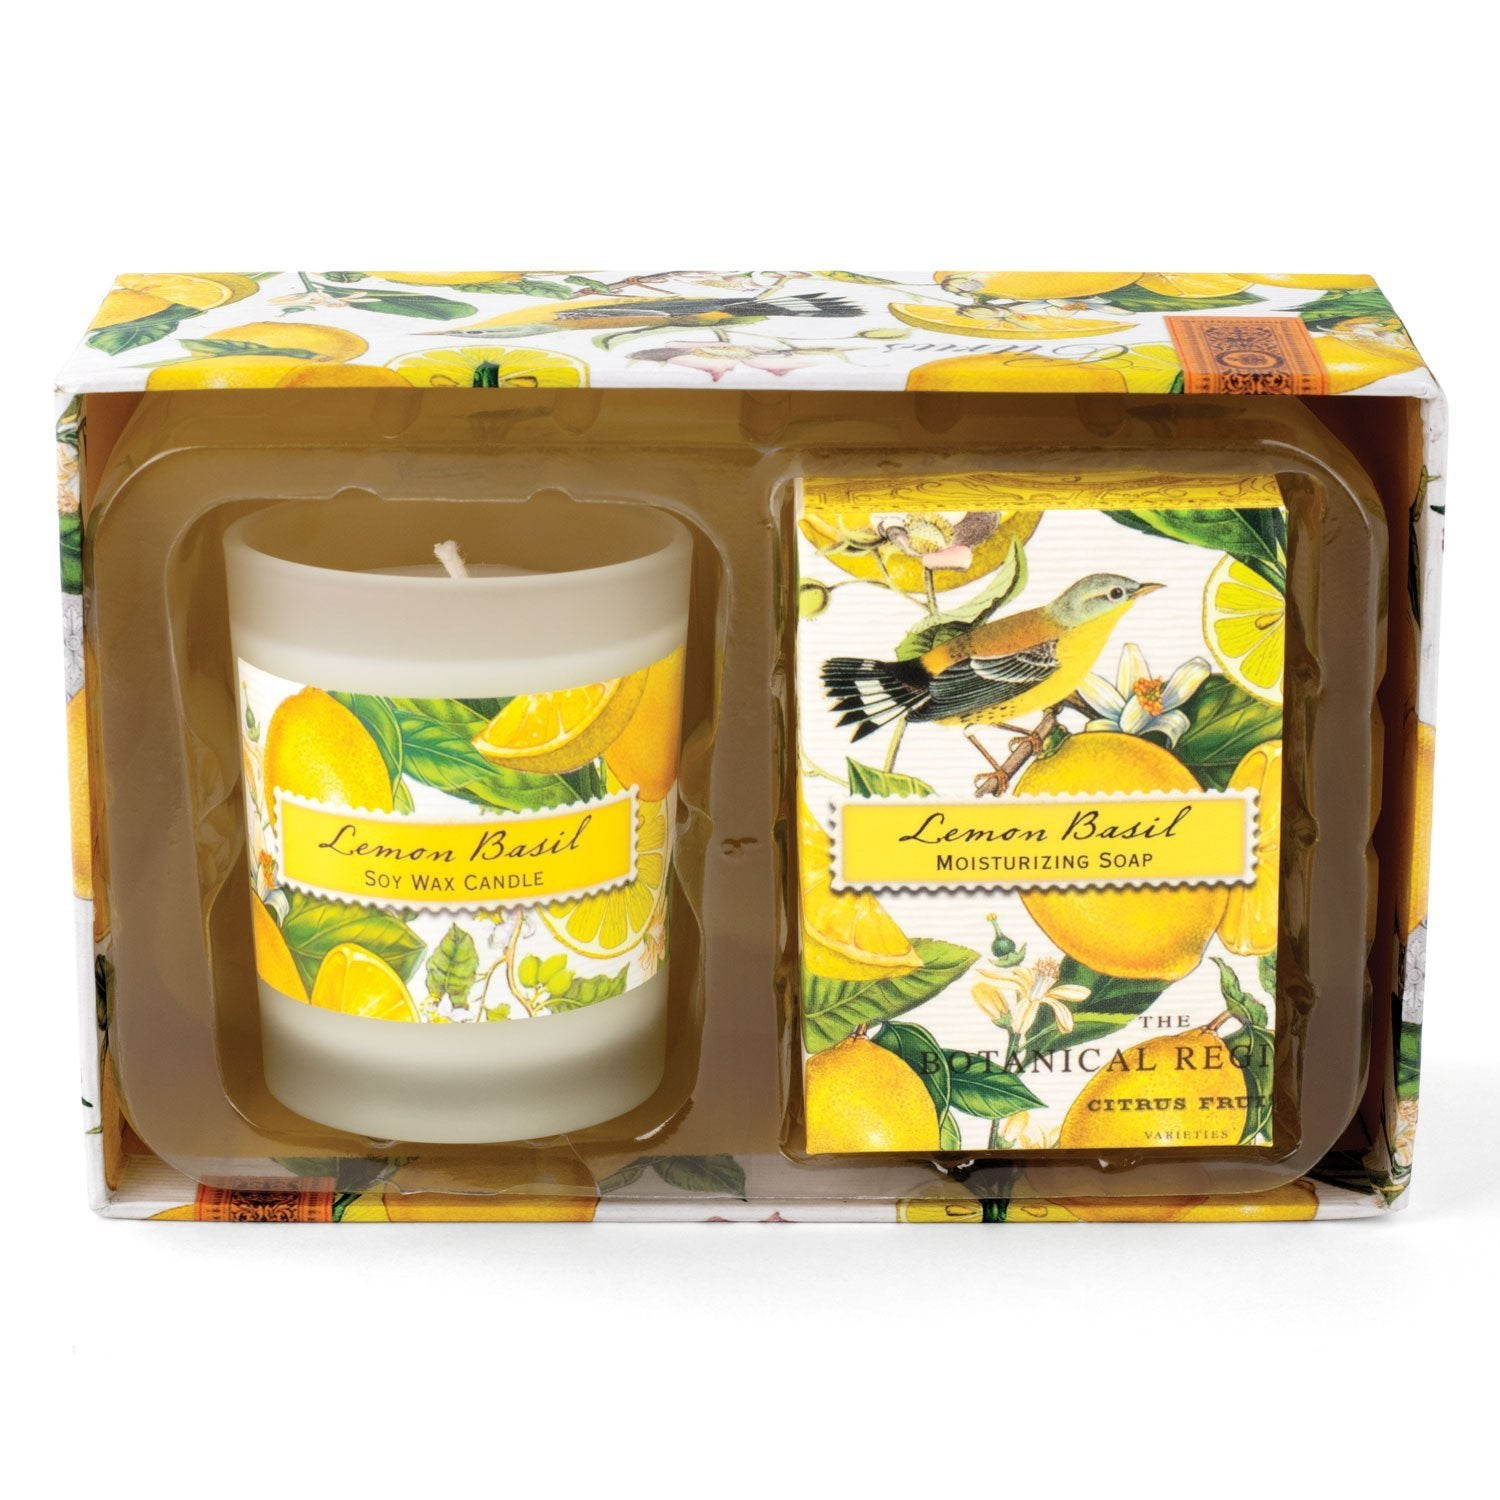 LEMON BASIL CANDLE AND SOAP GIFT SET CSS8 - Molly's! A Chic and Unique Boutique